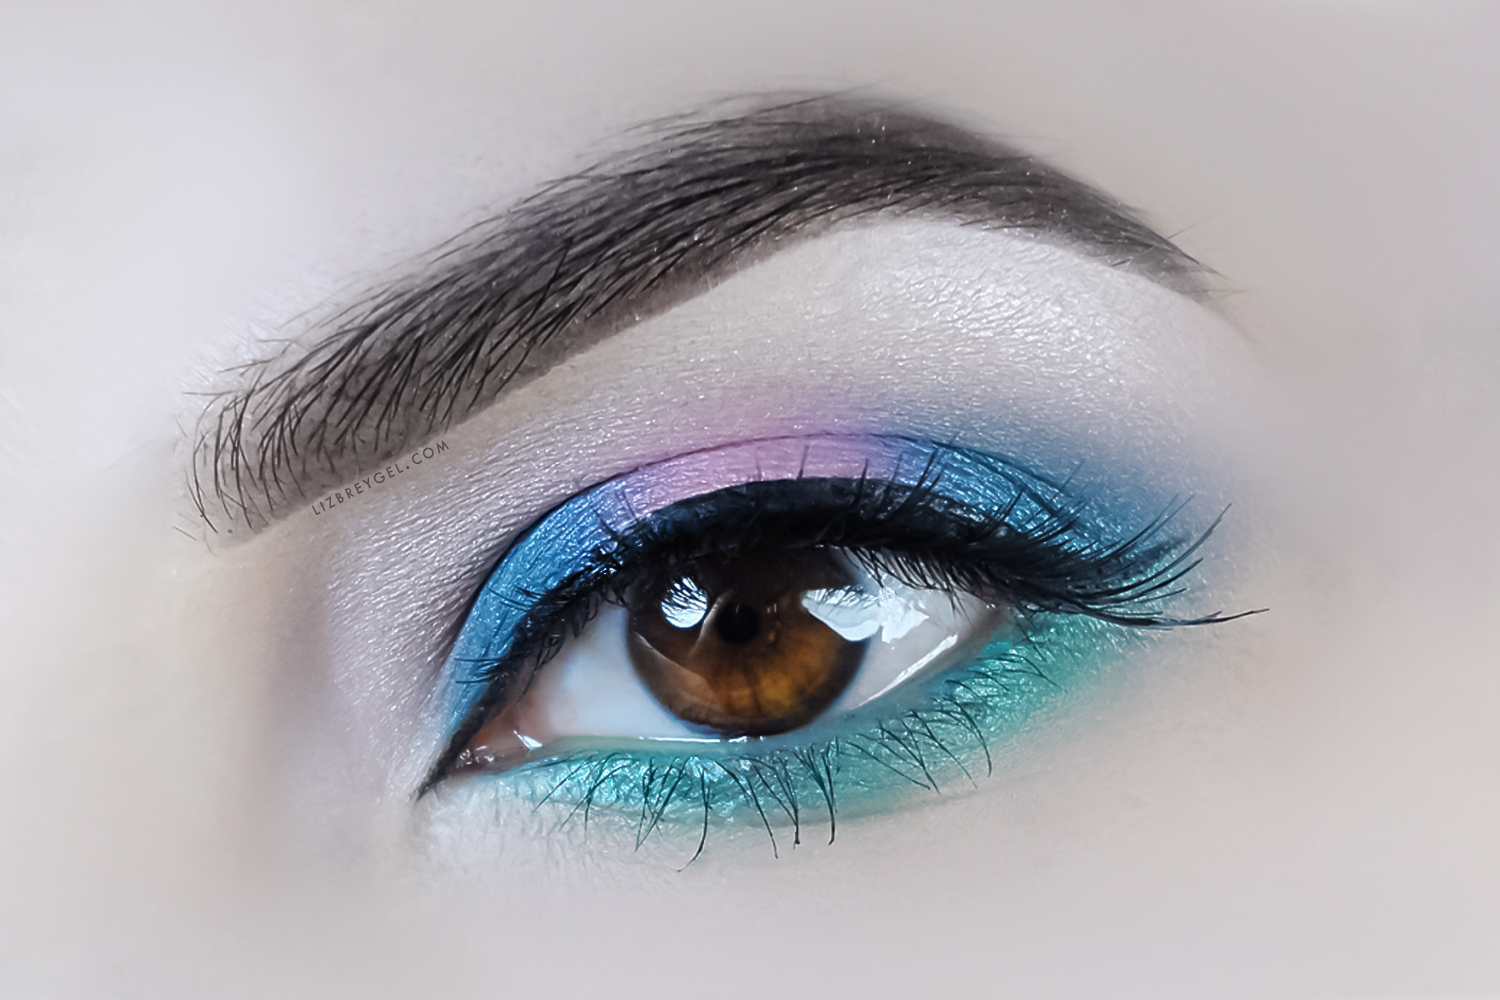 a close up picture of an eye with a colorful makeup look